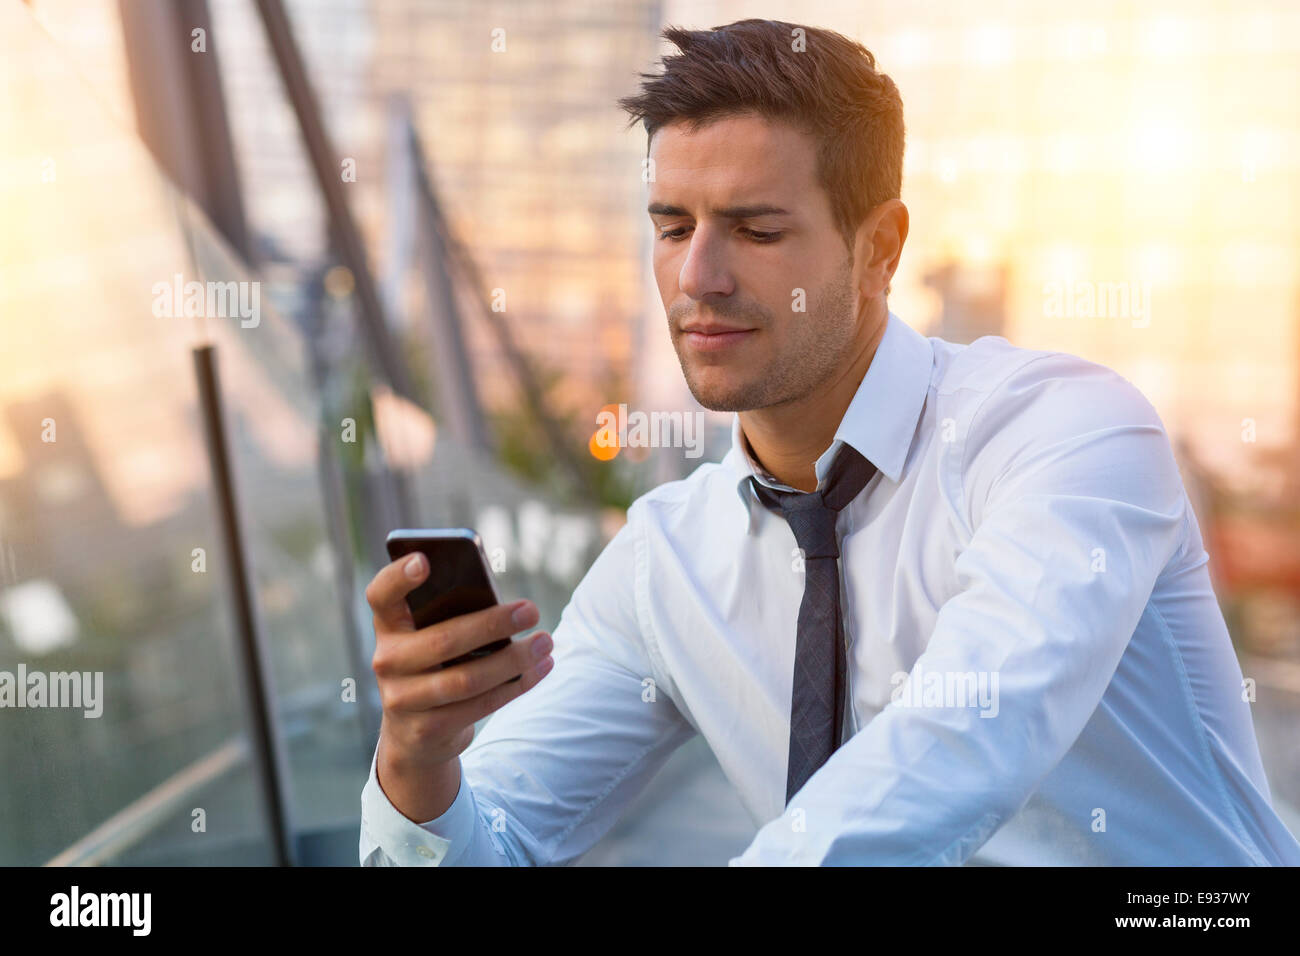 Businessman using cell phone - Stock Image